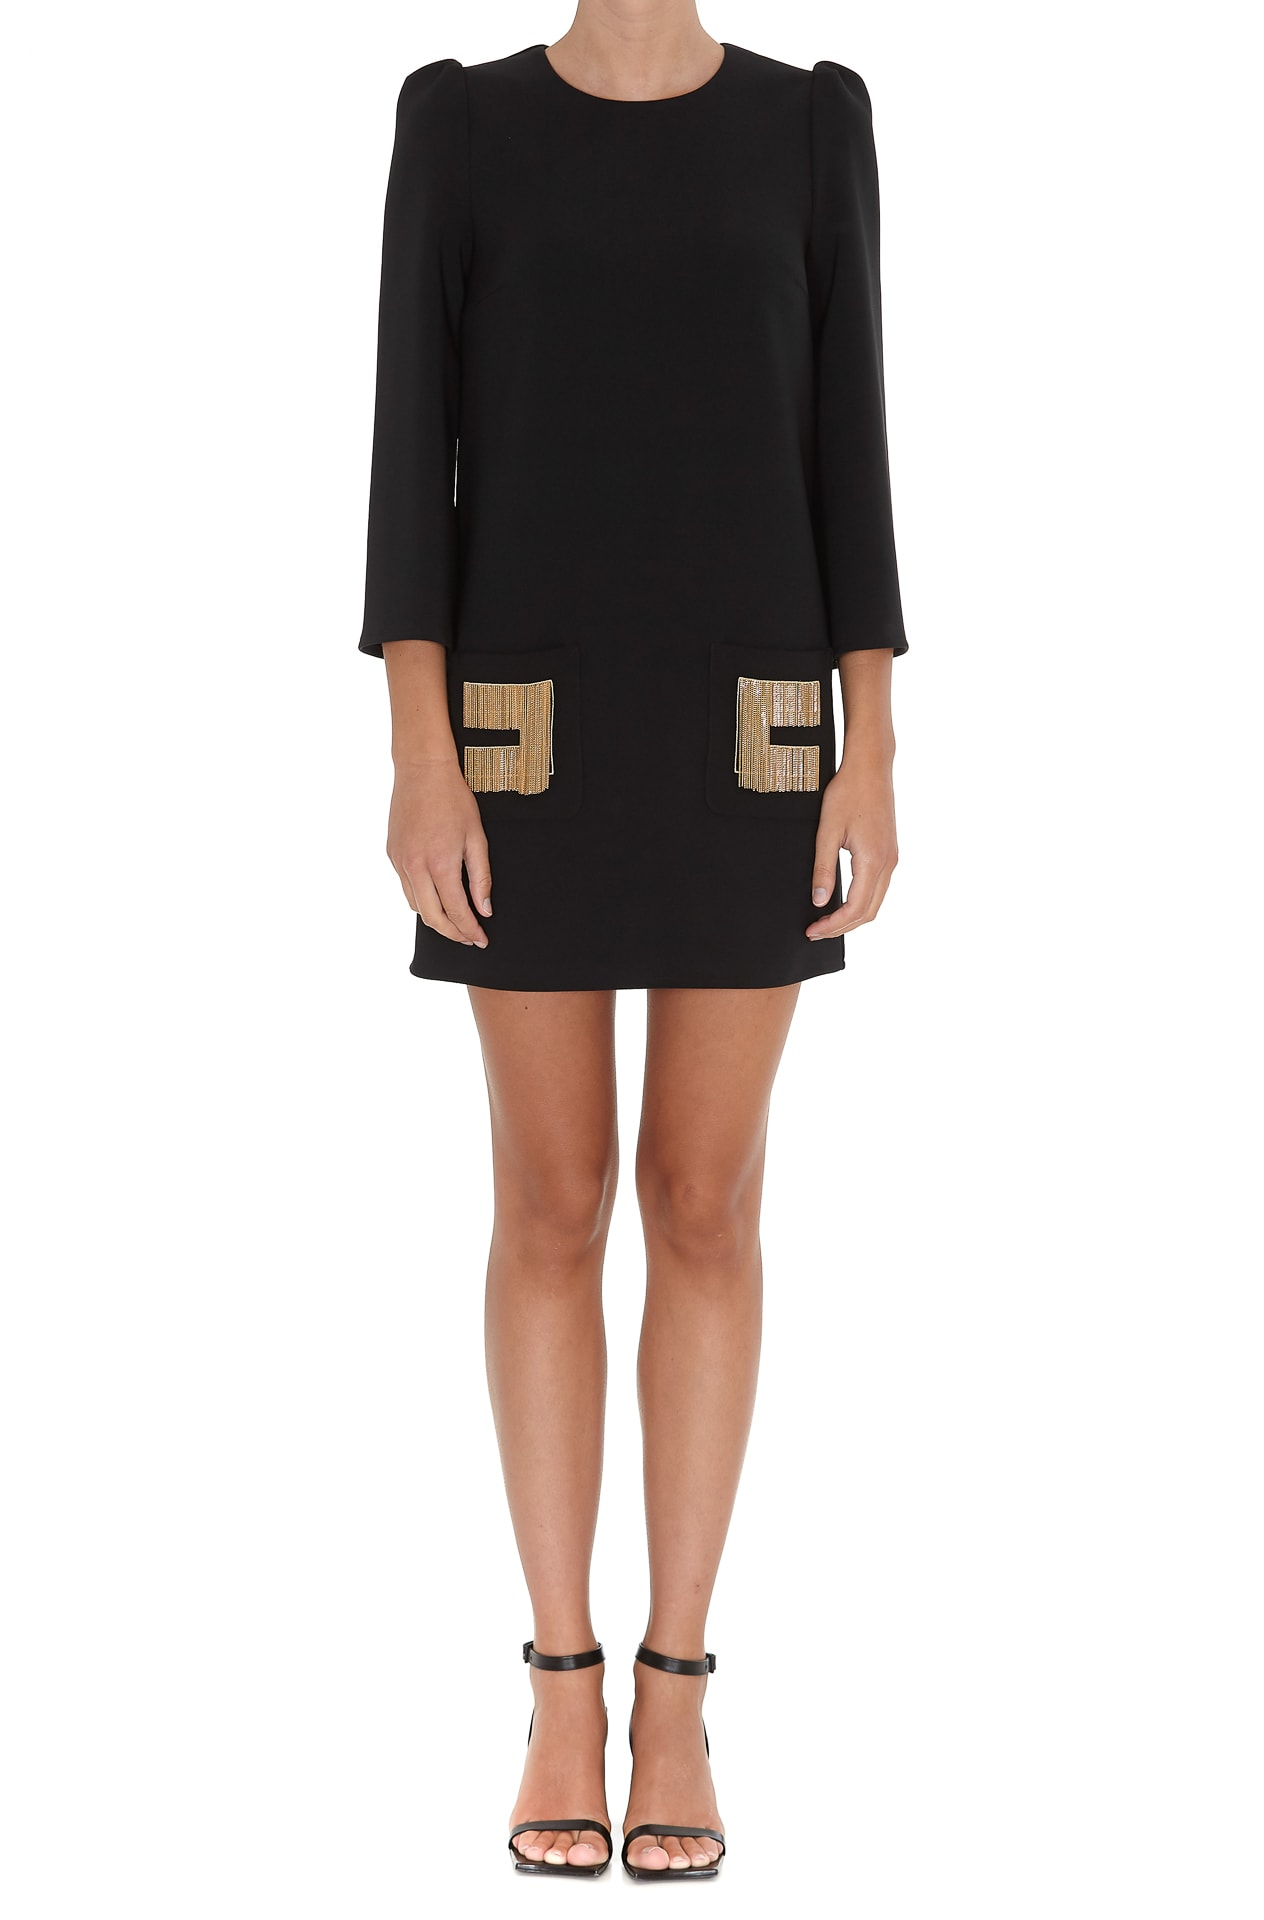 Elisabetta Franchi Celyn B. Dress